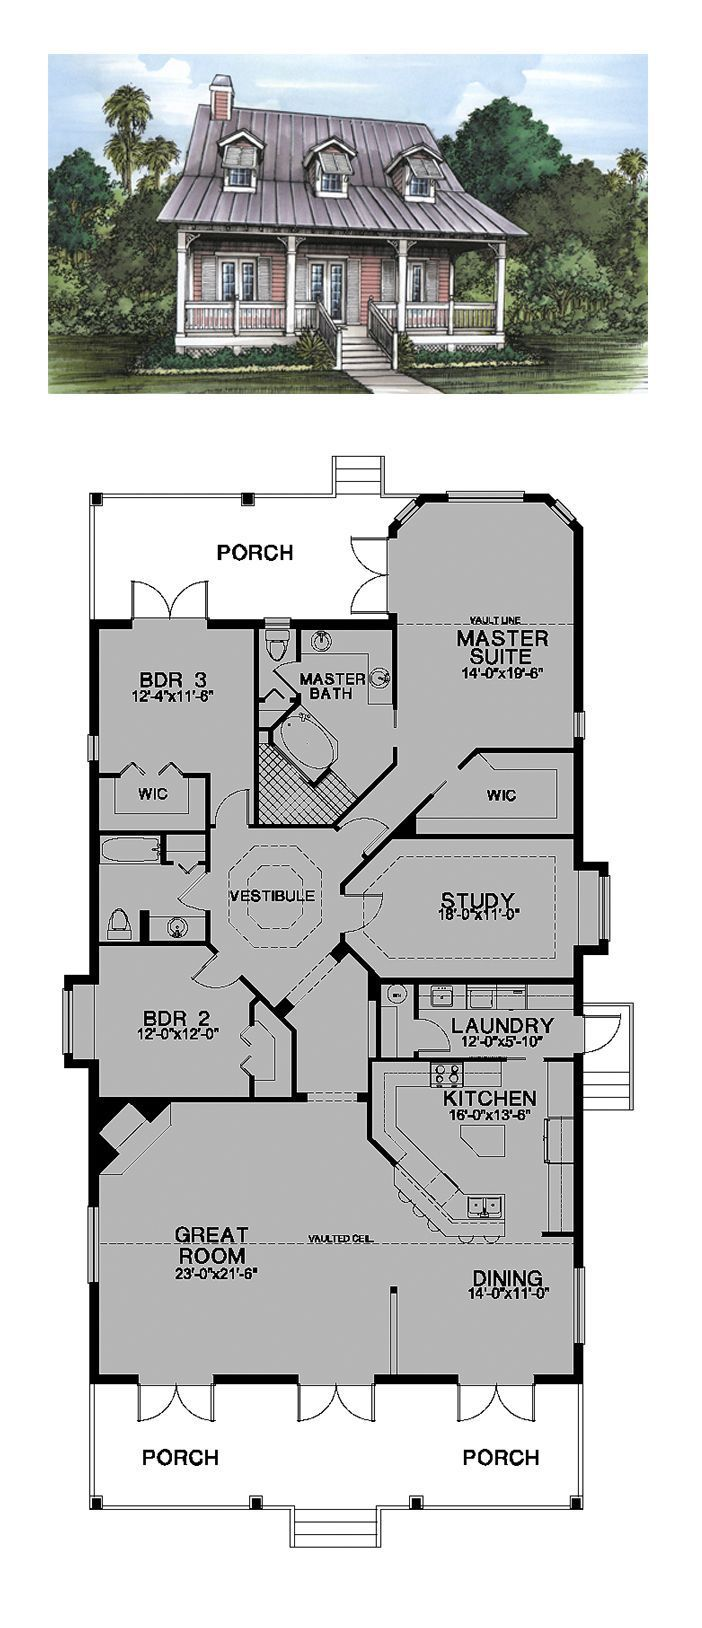 Could Be A Great Lake House W Study As A Bedroom And 2nd Level Above Bedrooms Or Walkout Basement Best House Plans House Layouts Dream House Plans